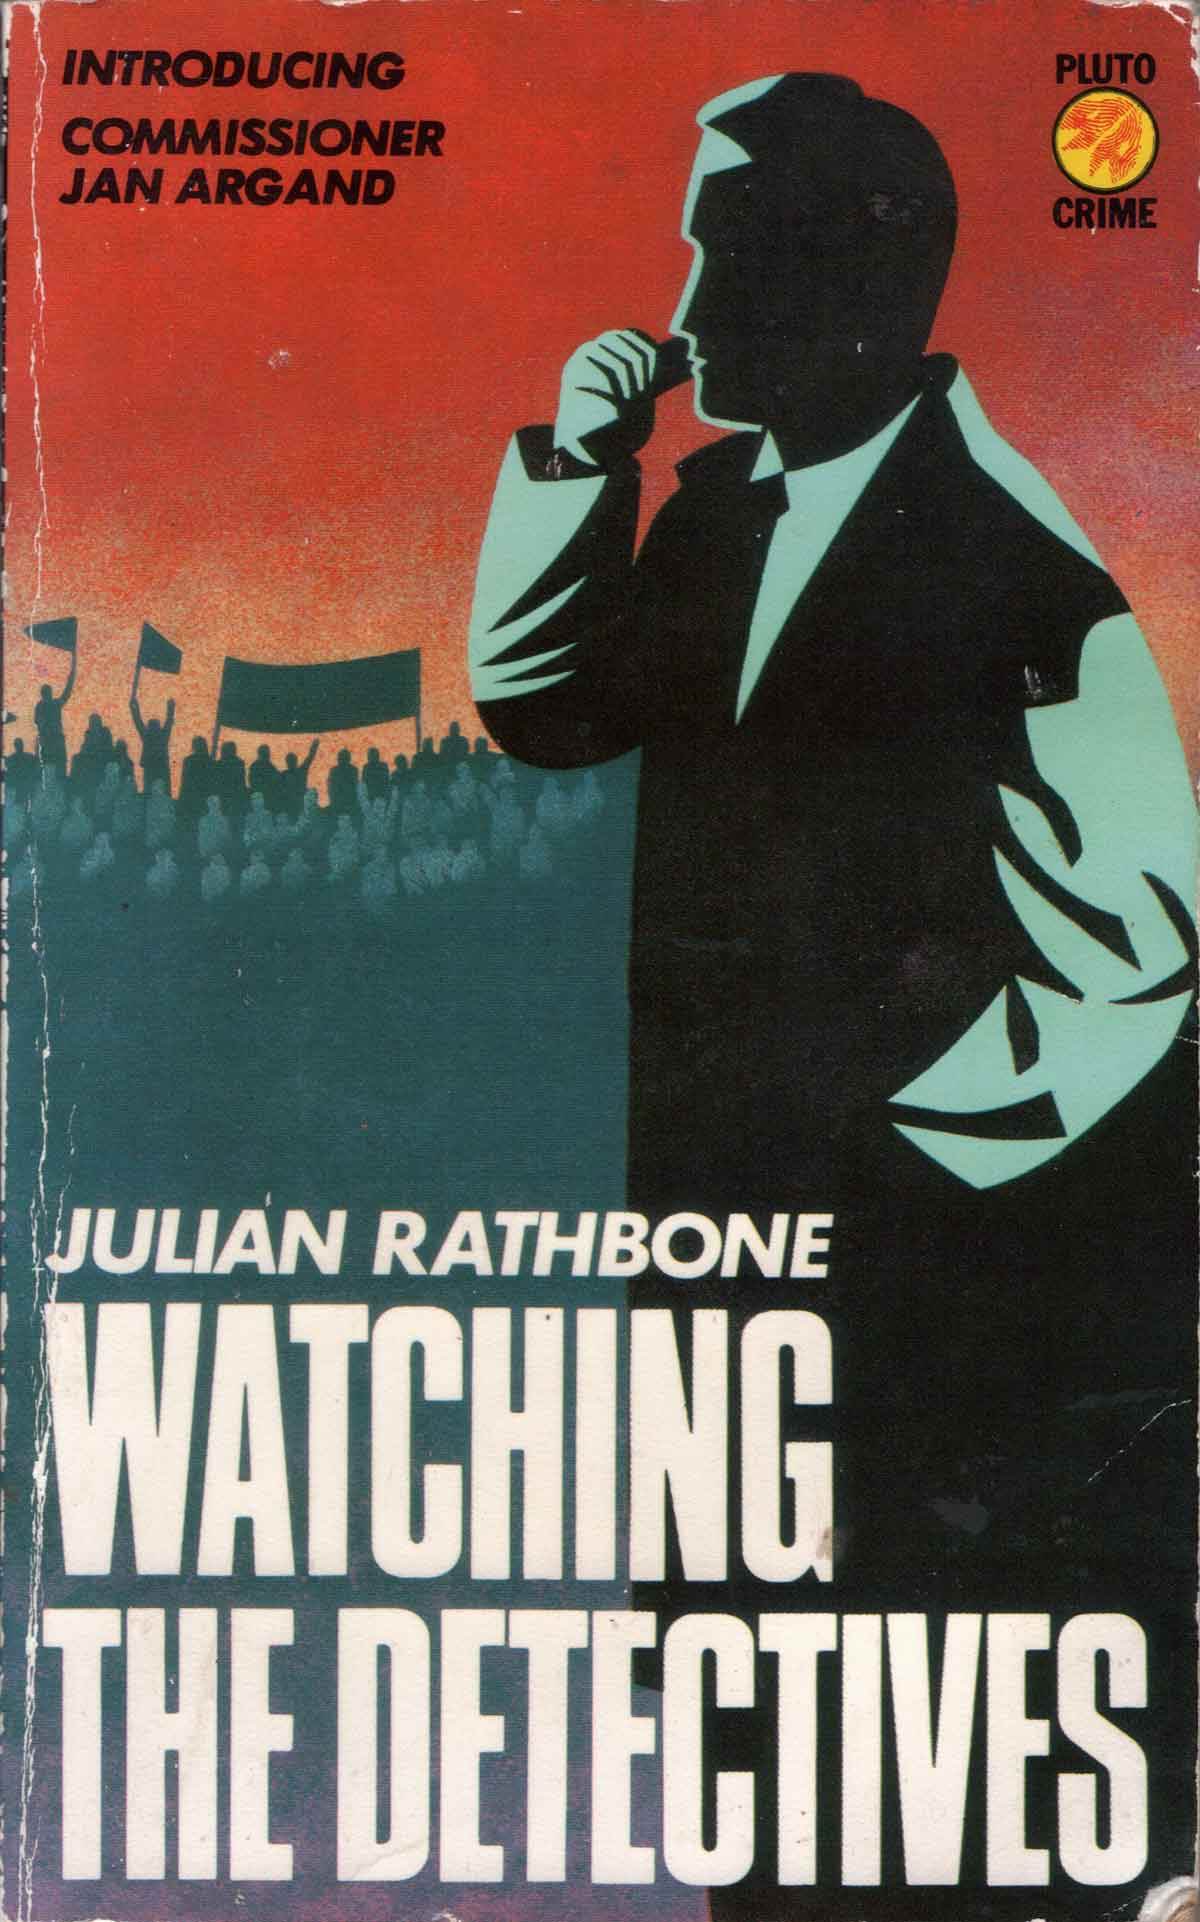 Rathbone_WatchingDetectives_Pluto